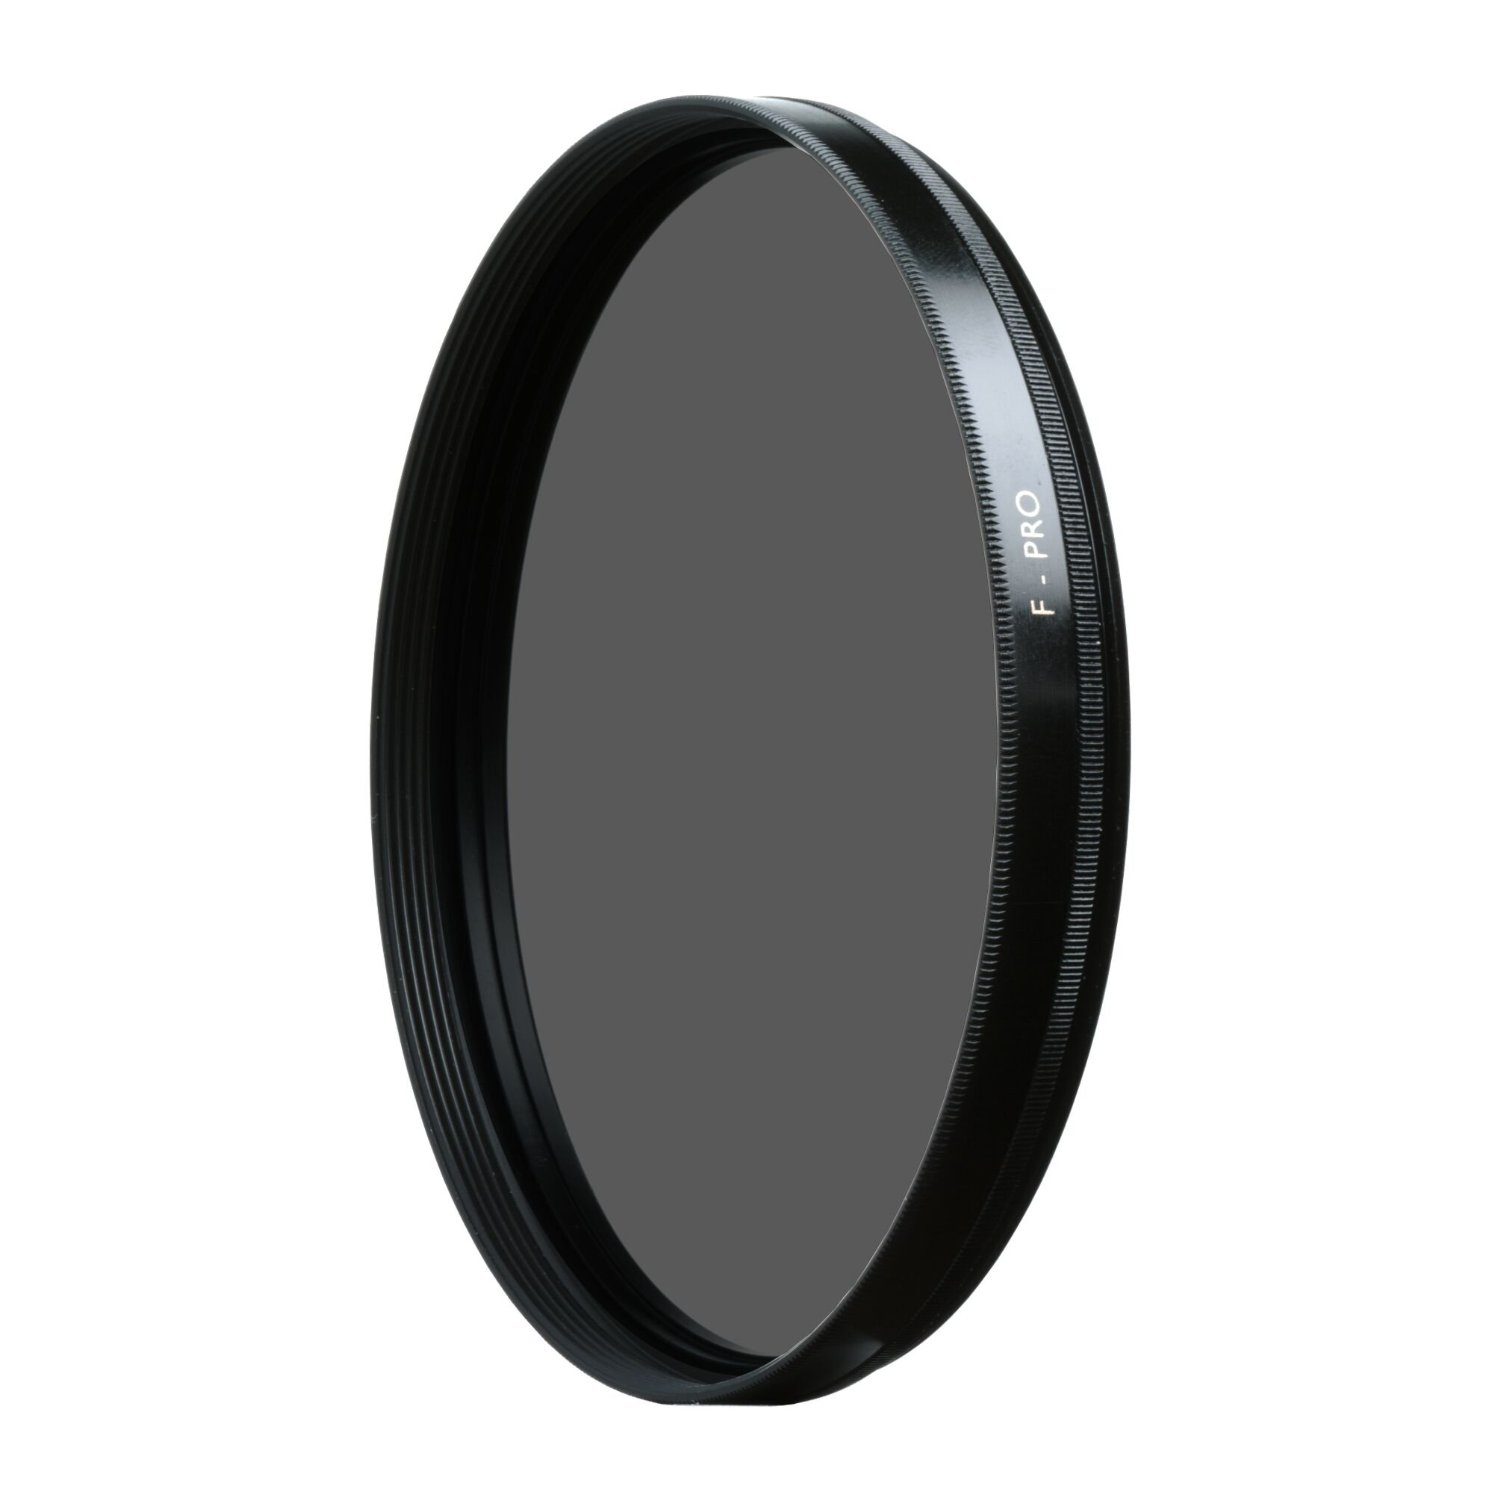 B+W 77mm Kaesemann Circular Polarizer with Multi-Resistant Coating